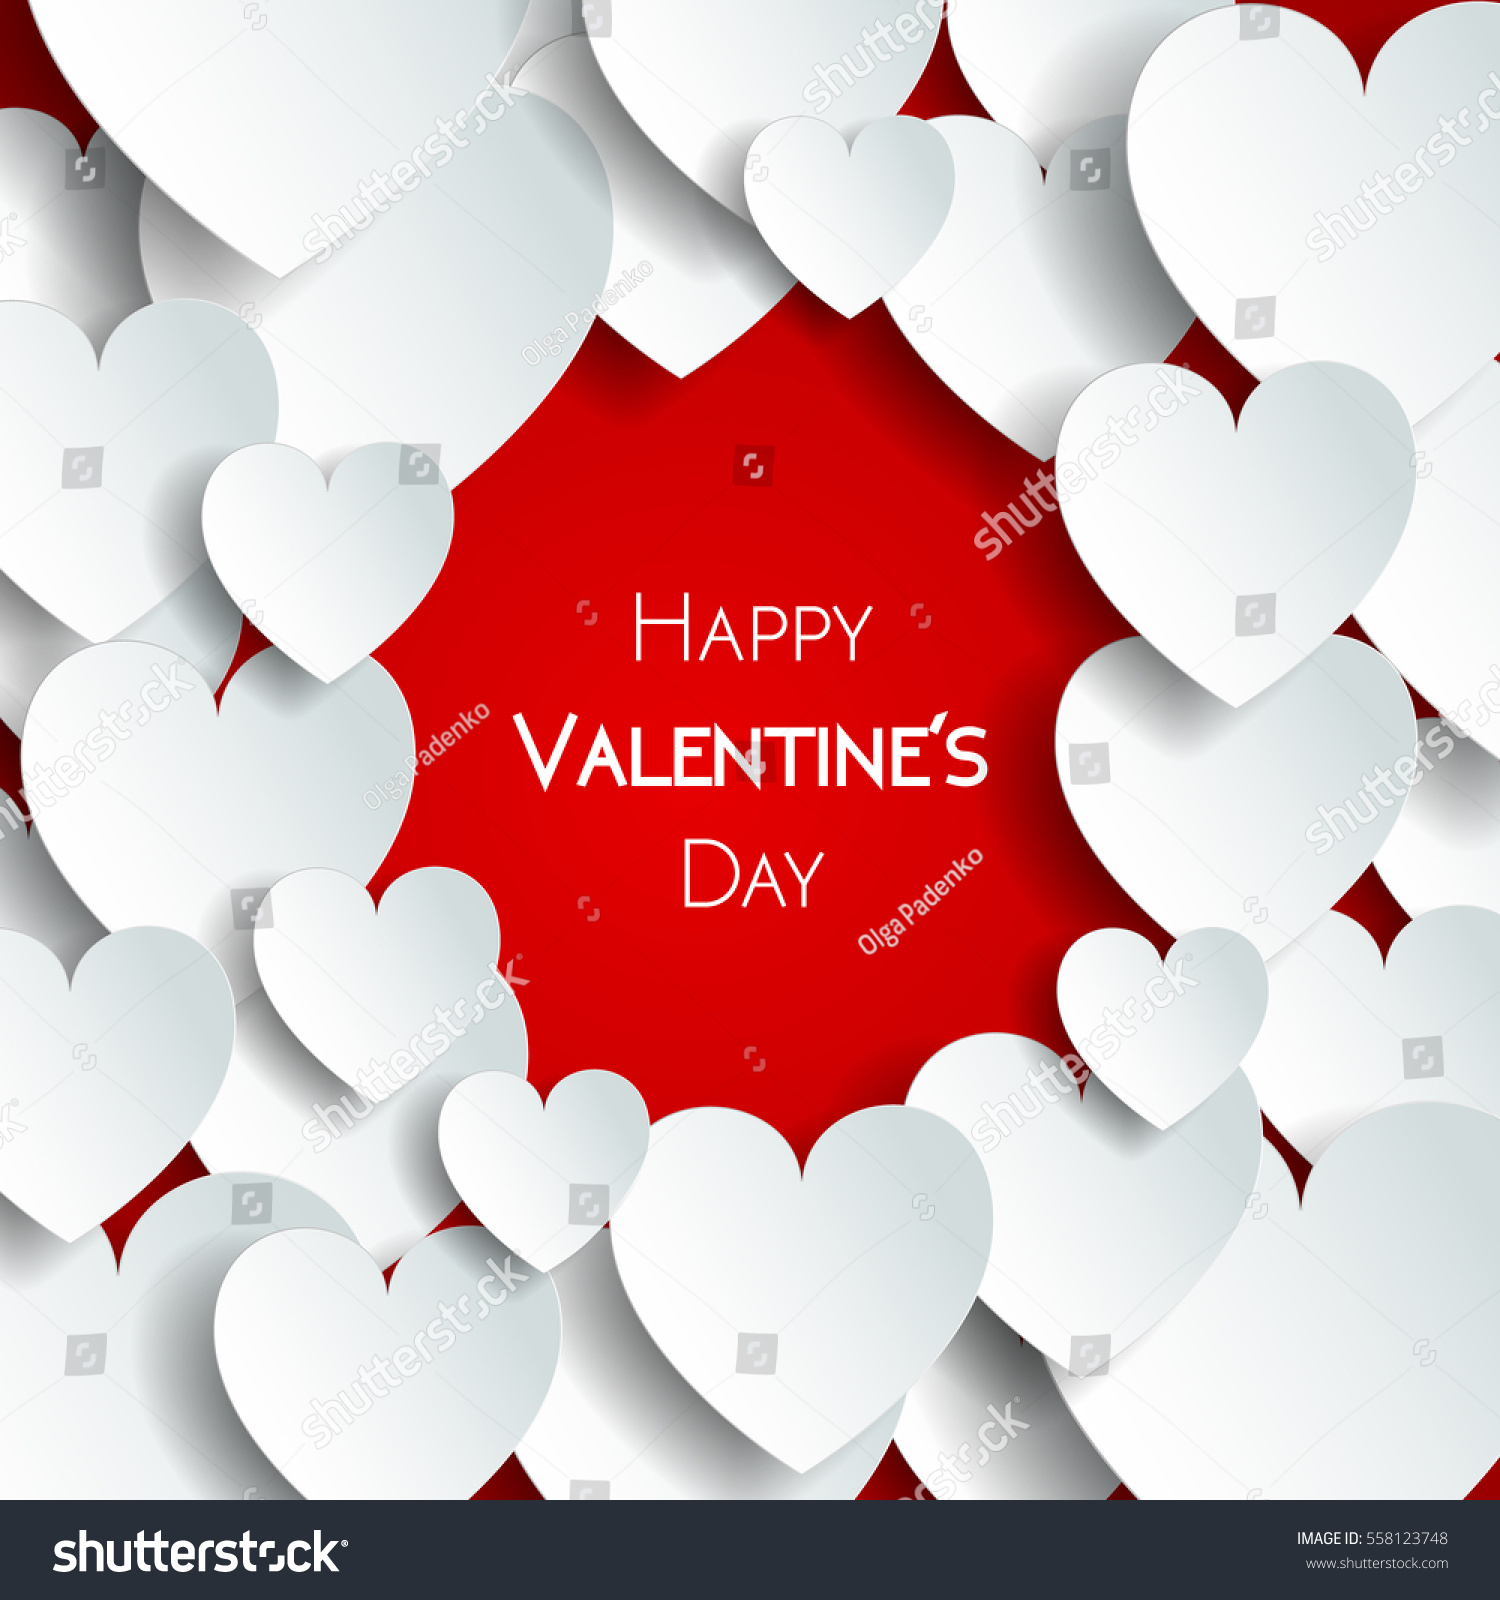 Happy valentine day greeting card hearts stock vector 558123748 happy valentine day greeting card with hearts vector illustration of loving hearts kristyandbryce Image collections